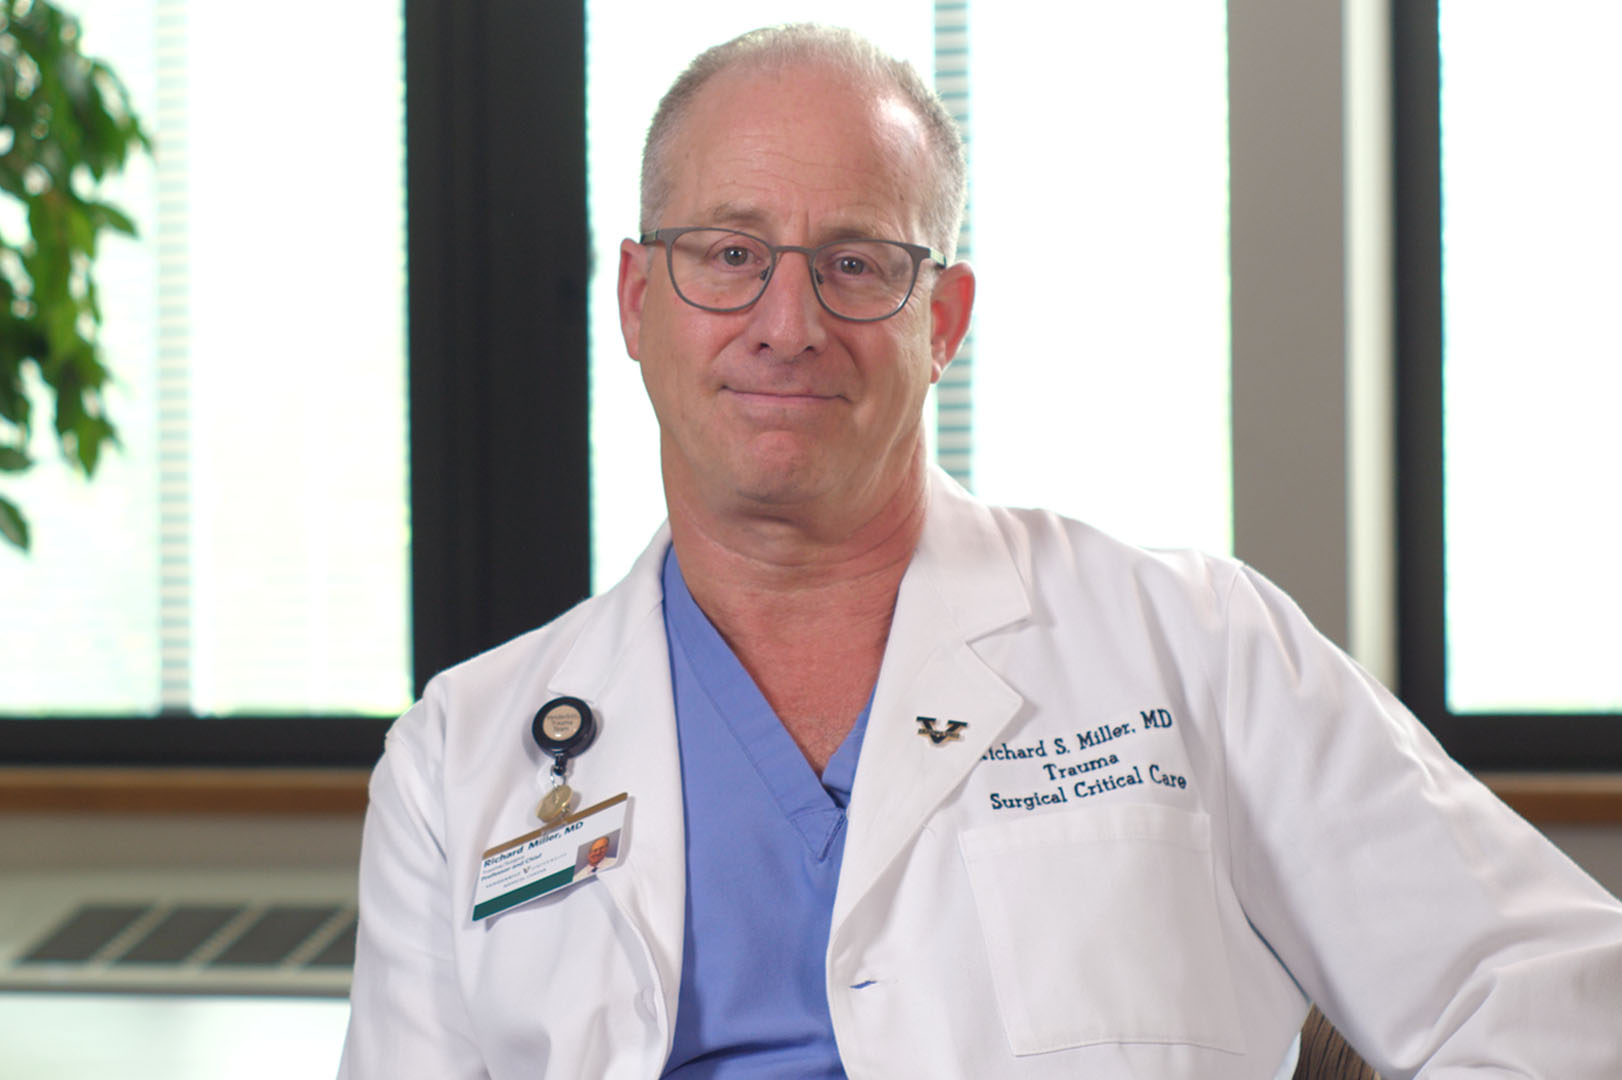 Richard S. Miller, M.D. - As the leader of one of the busiest trauma units in the region, Dr. Miller and his team faced three trauma cases that were very out of the ordinary this year.